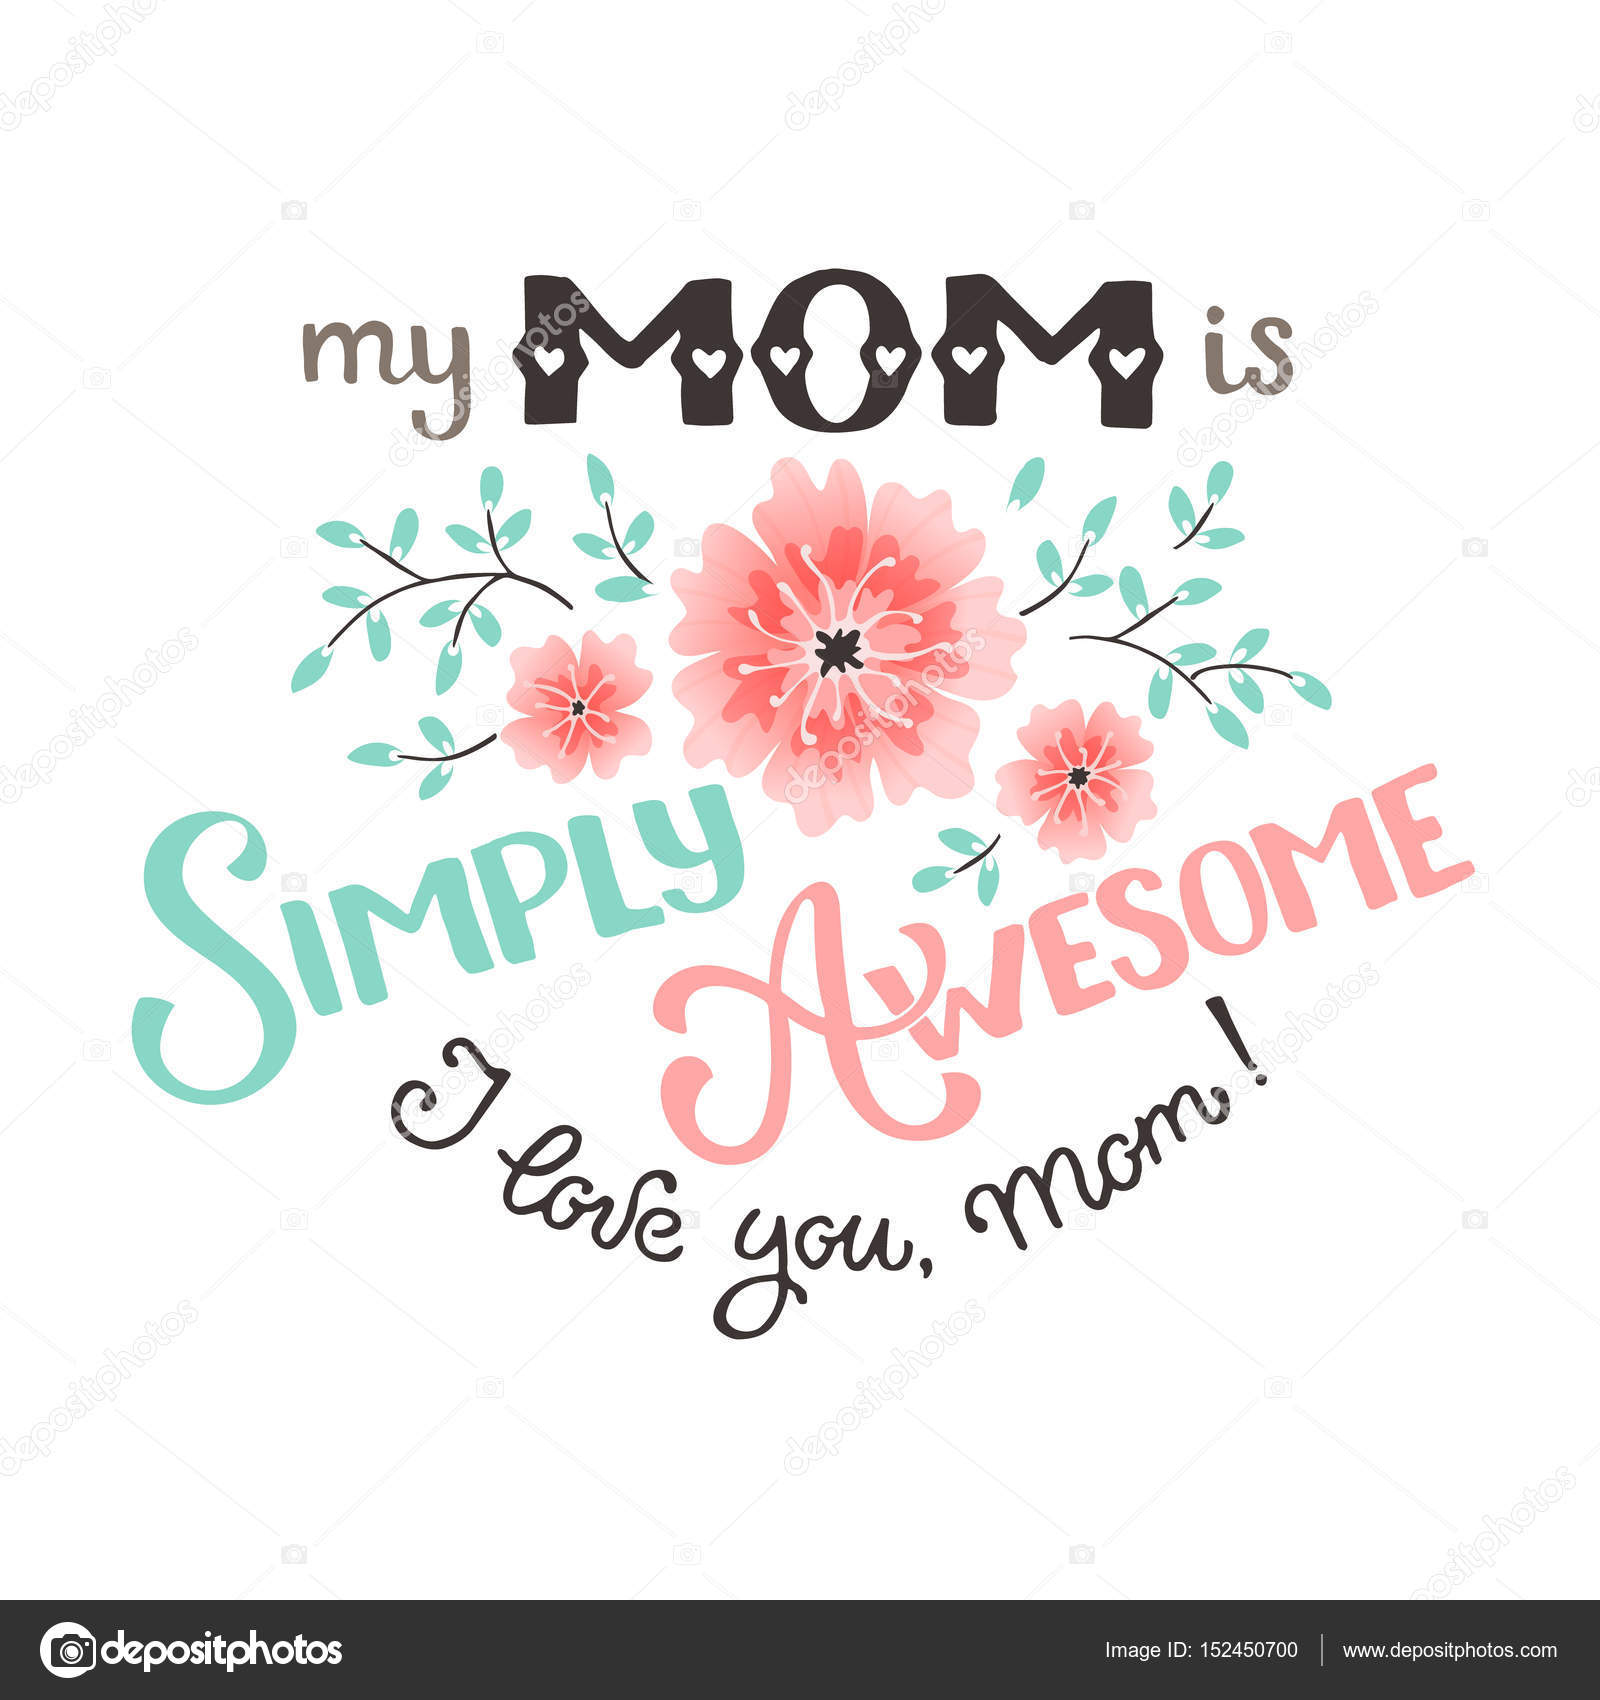 Mothers day card stock vector ollymolly 152450700 mothers day greeting card my mom is simply awesome wording with flowers isolated on white background i love you mom text vector by ollymolly kristyandbryce Choice Image